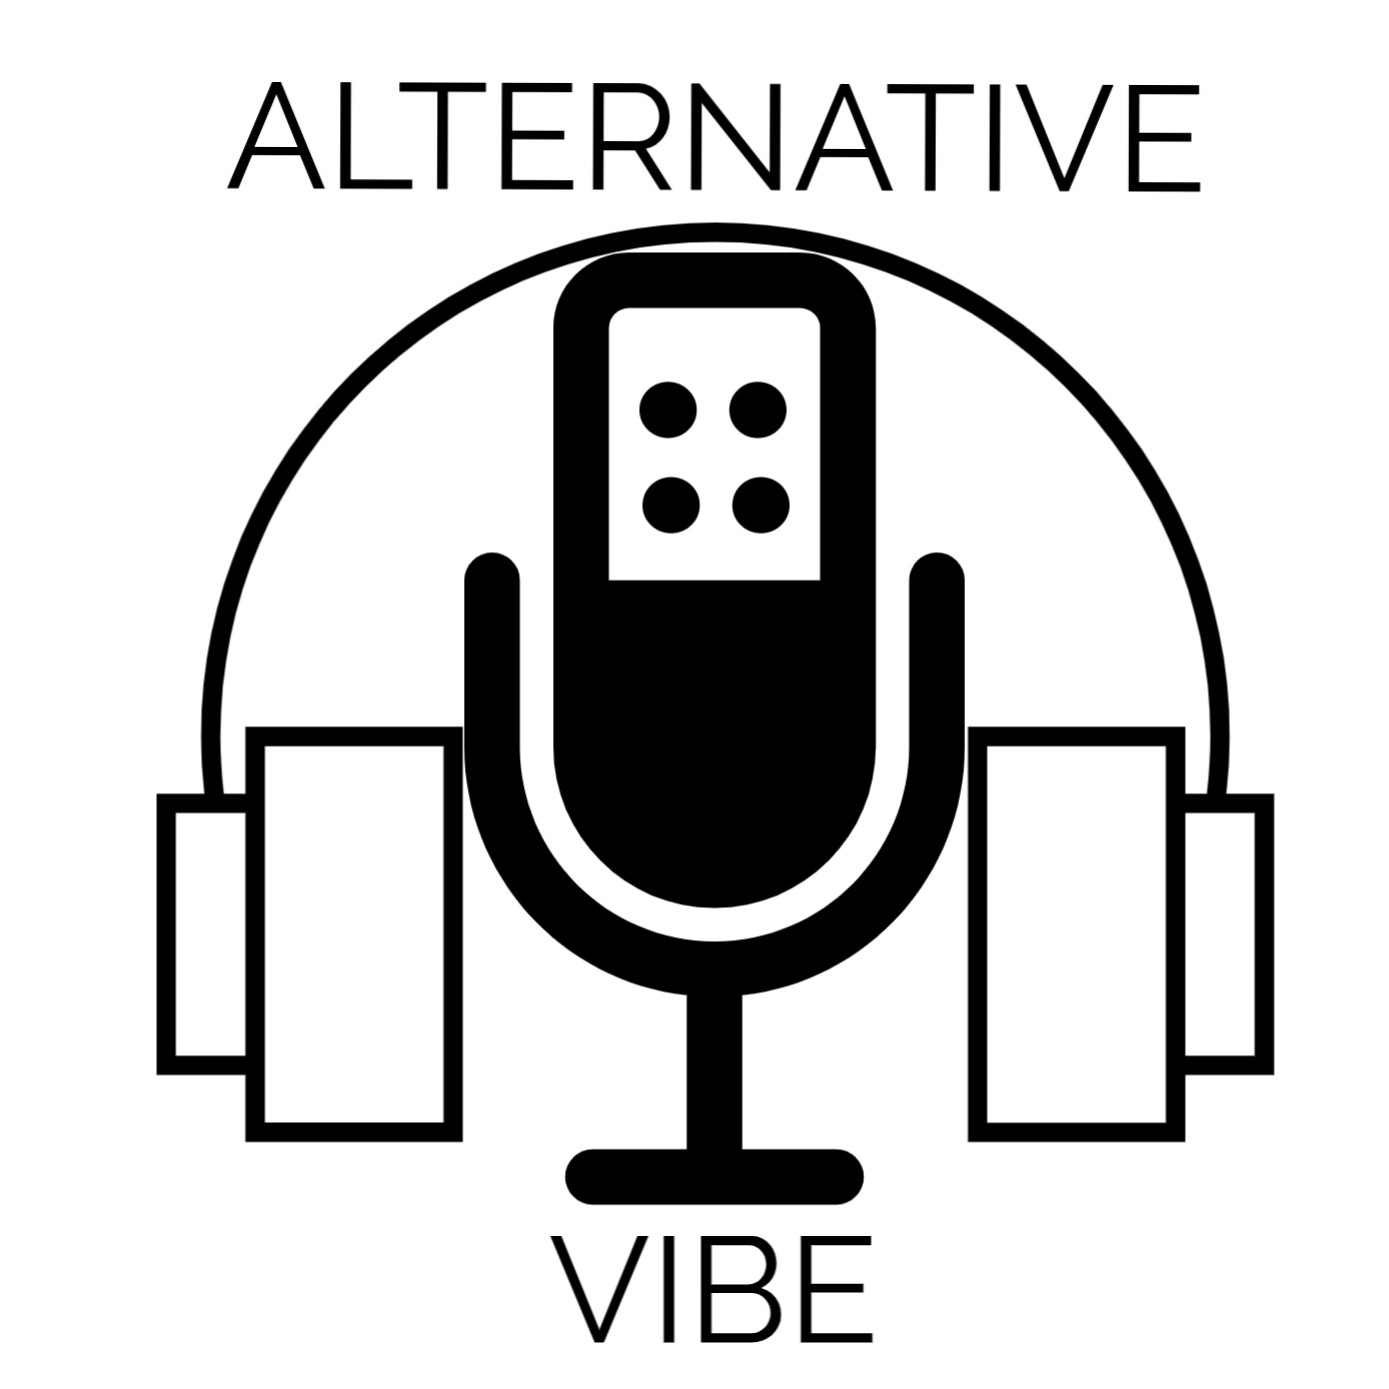 Altertative Vibe Check